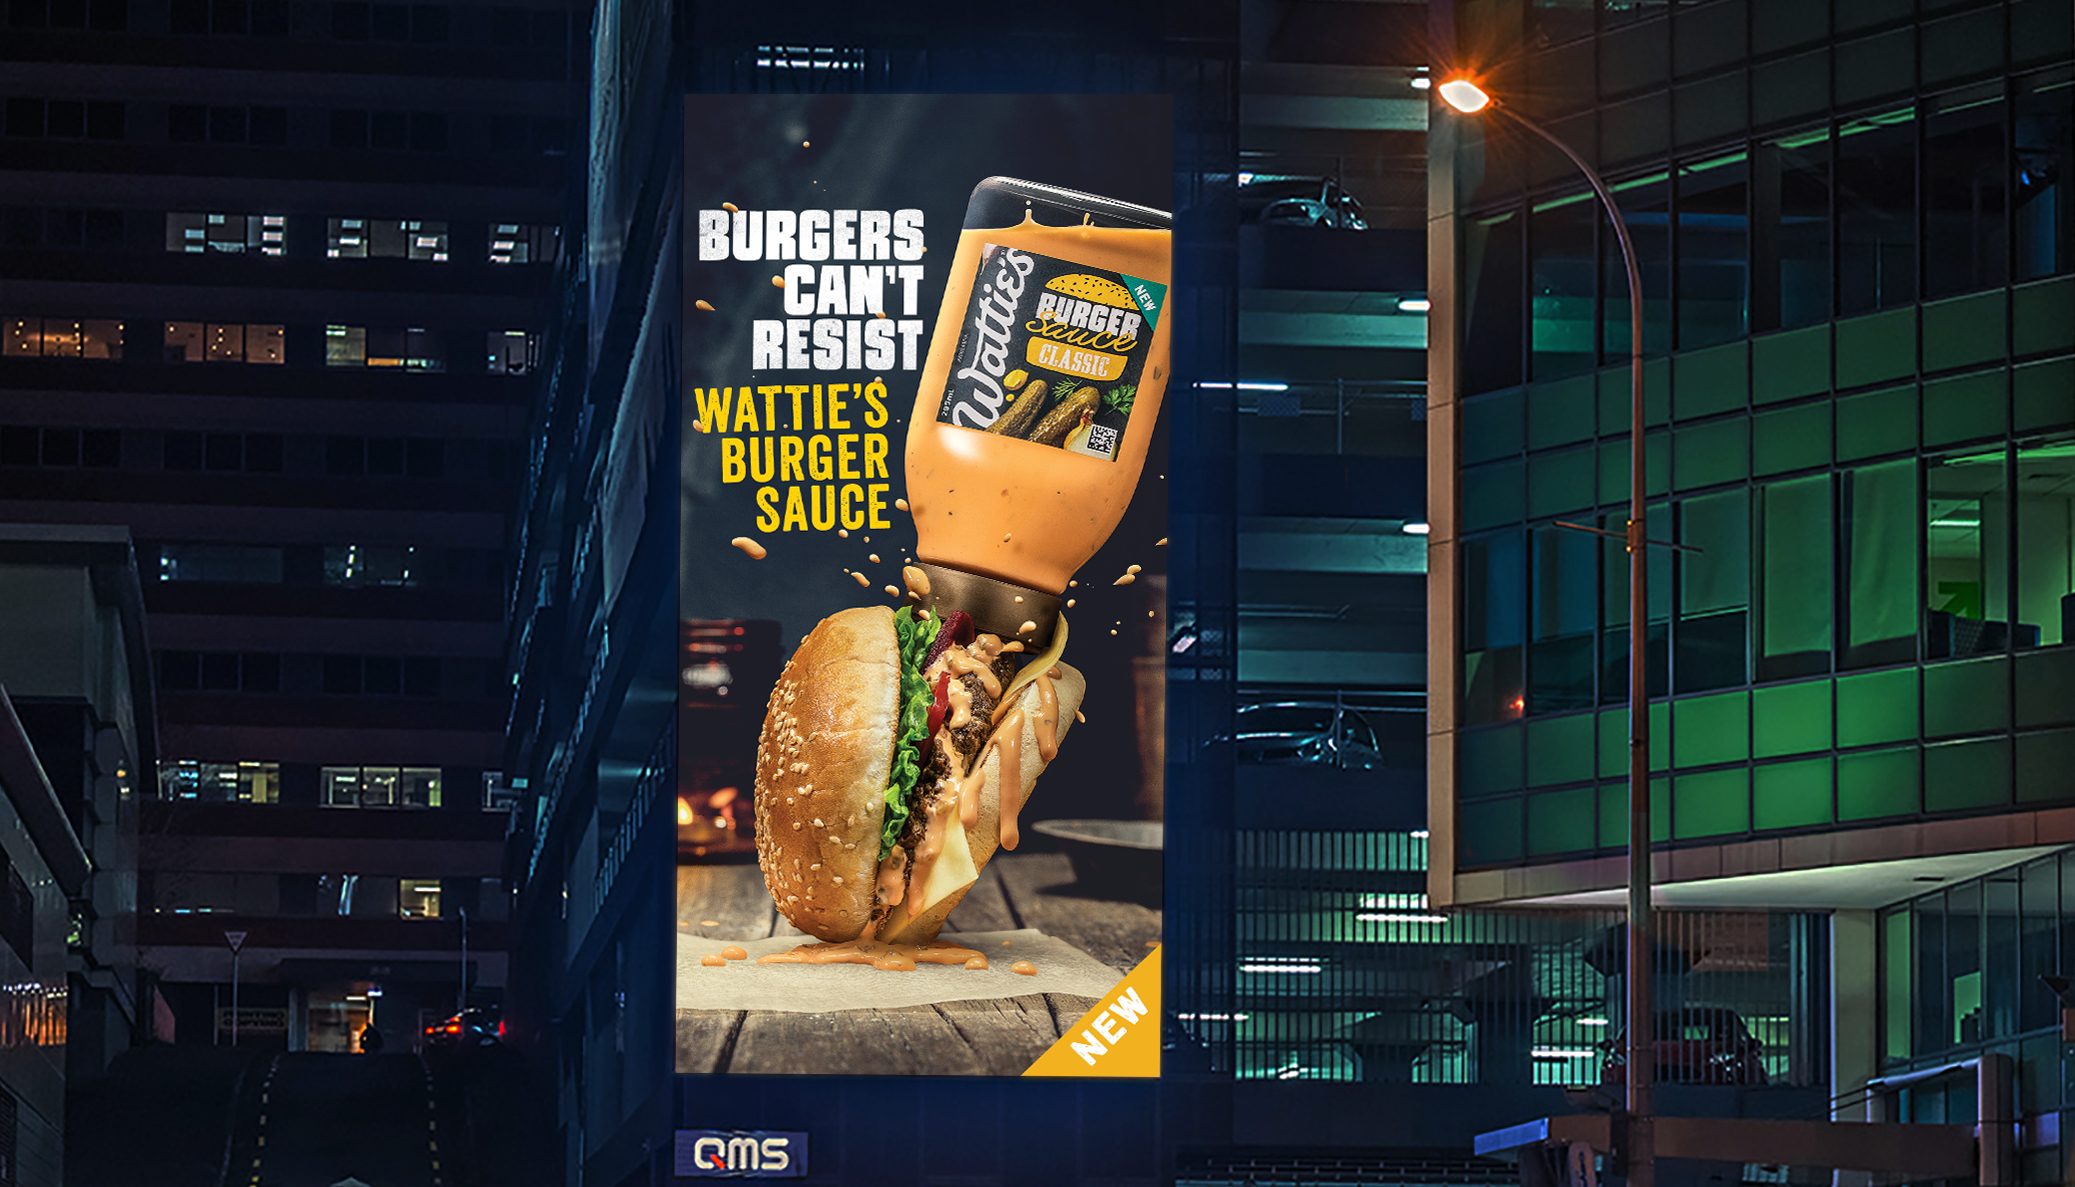 Wattie's Burger Sauce launches new campaign via The Business Marketing Group